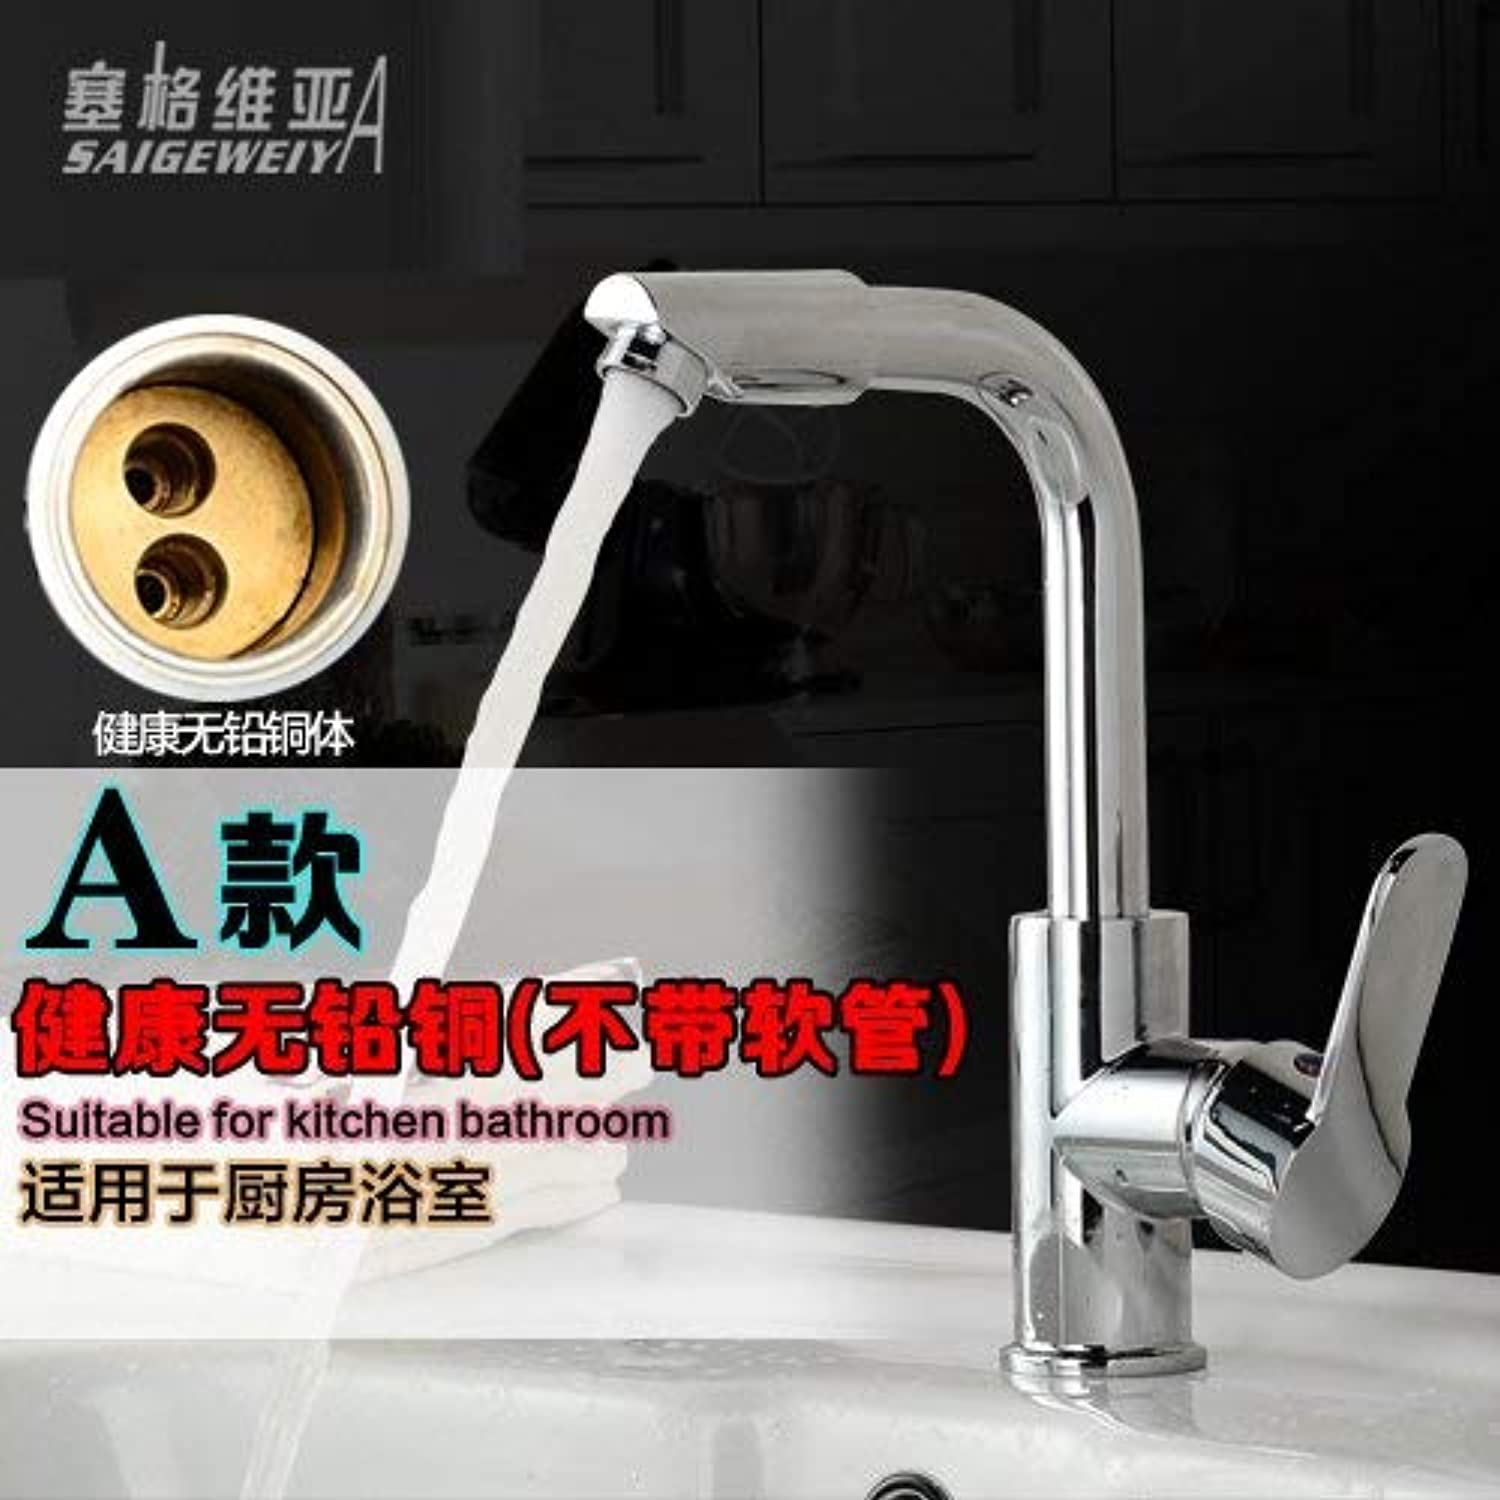 Oudan Basin Mixer Tap Bathroom Sink Faucet redate the Washbasin Faucet basin sink single hole and cold water on tap basin full brass valve body, of the whole copper